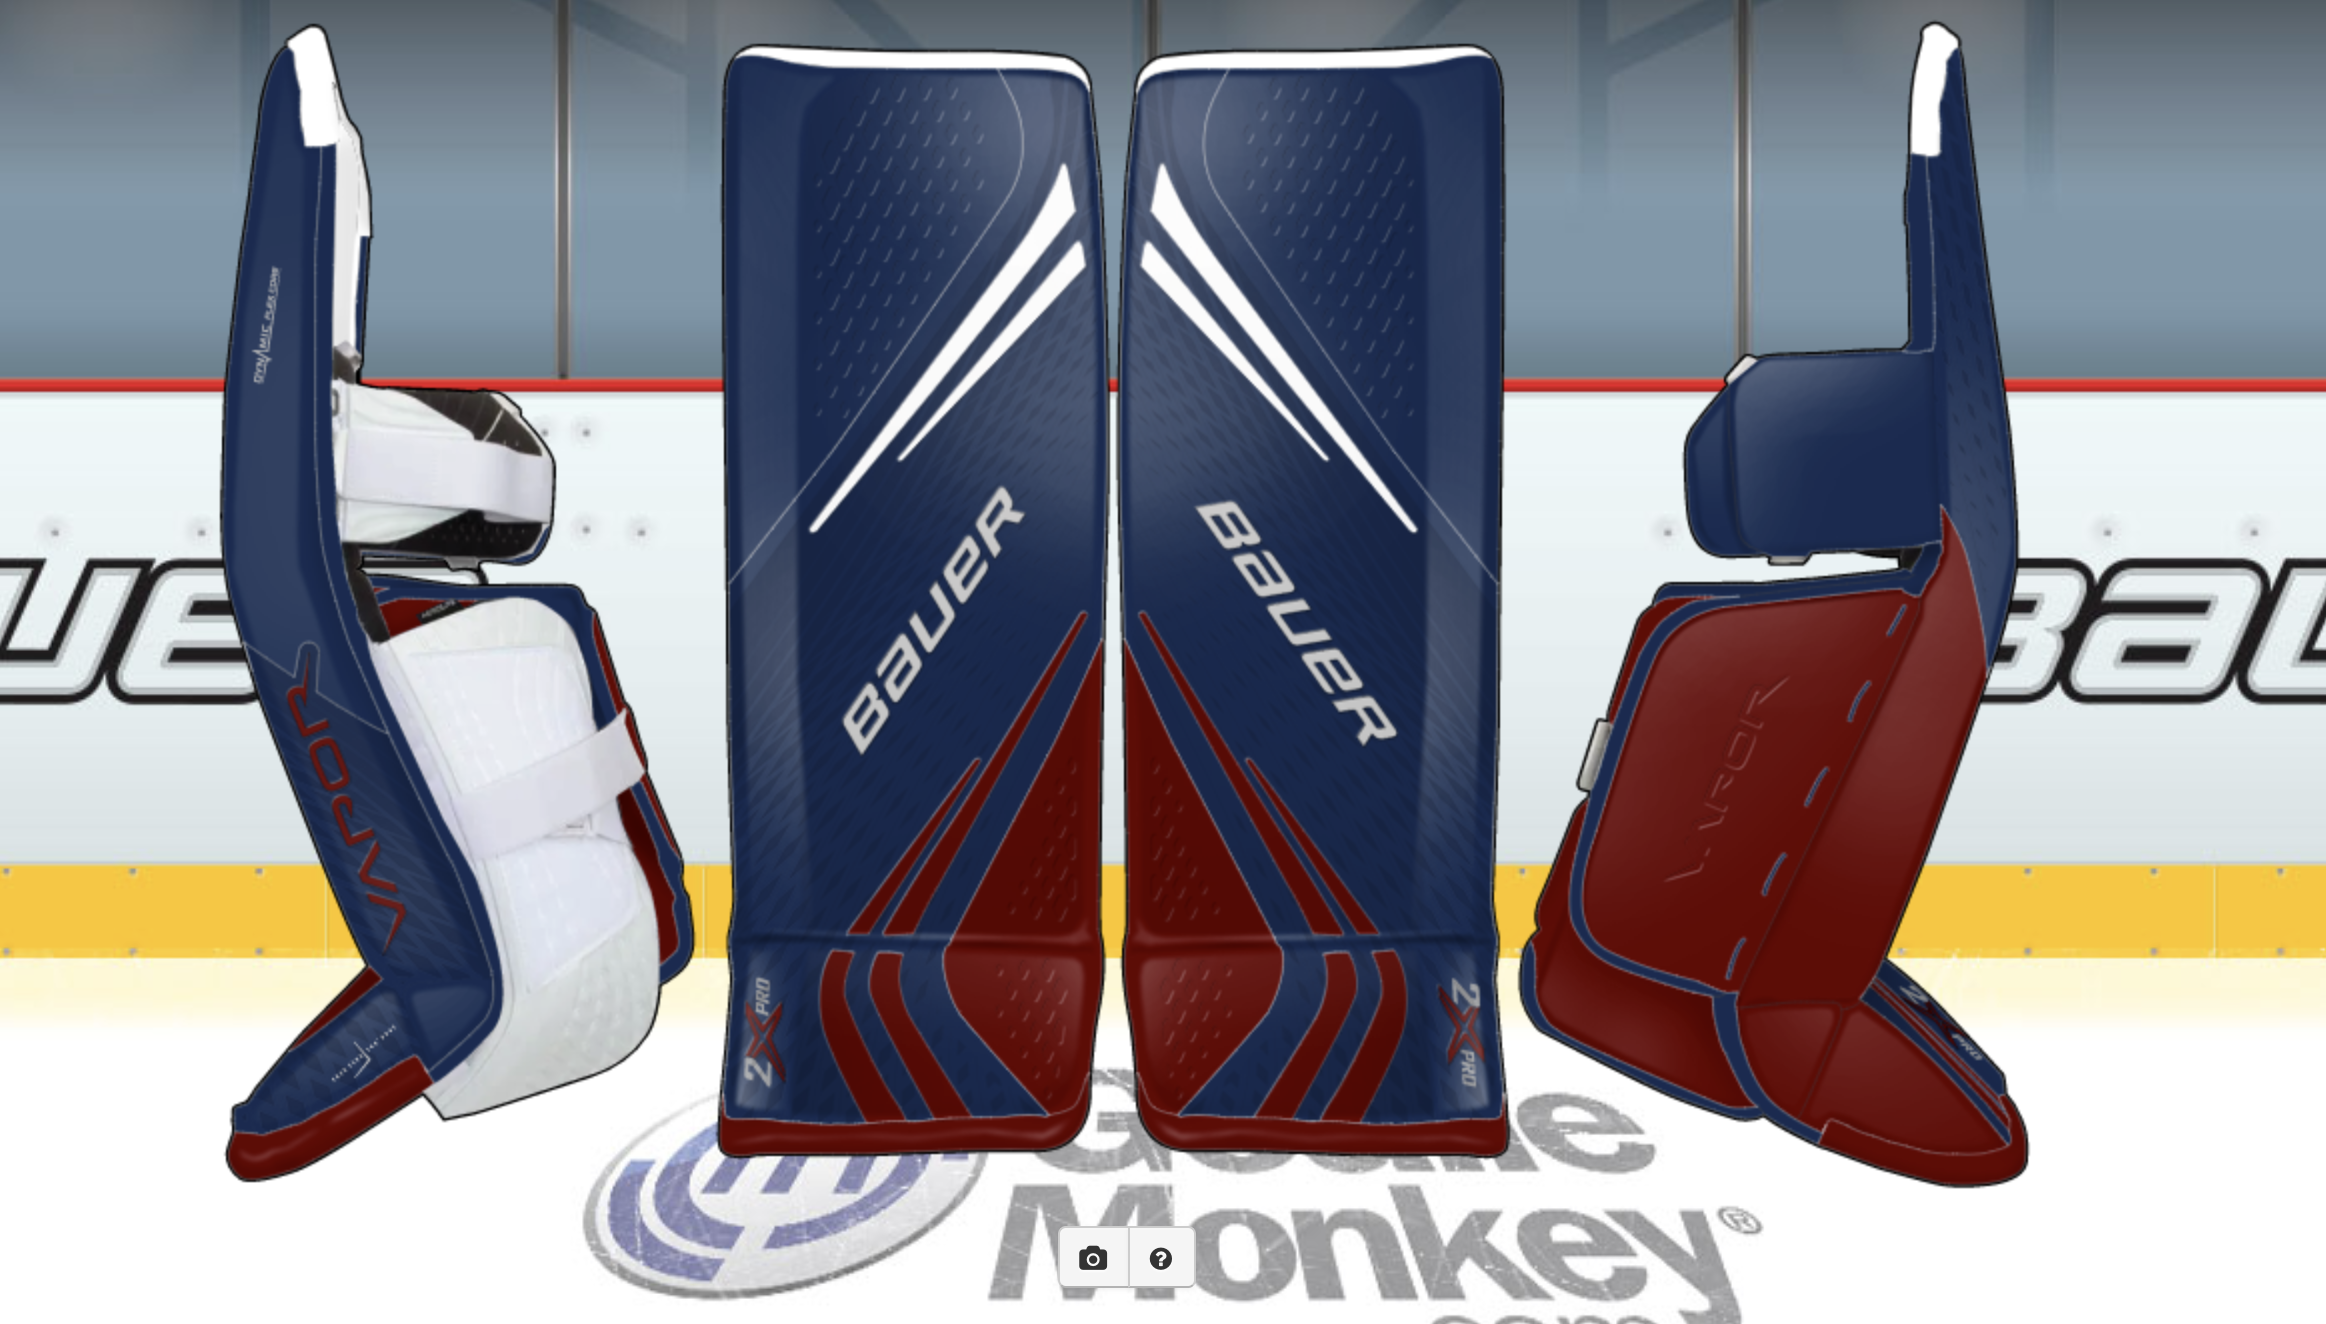 Avs Inspired Bauer 2x Gear Goalie Gear Goalie Pads Goalie